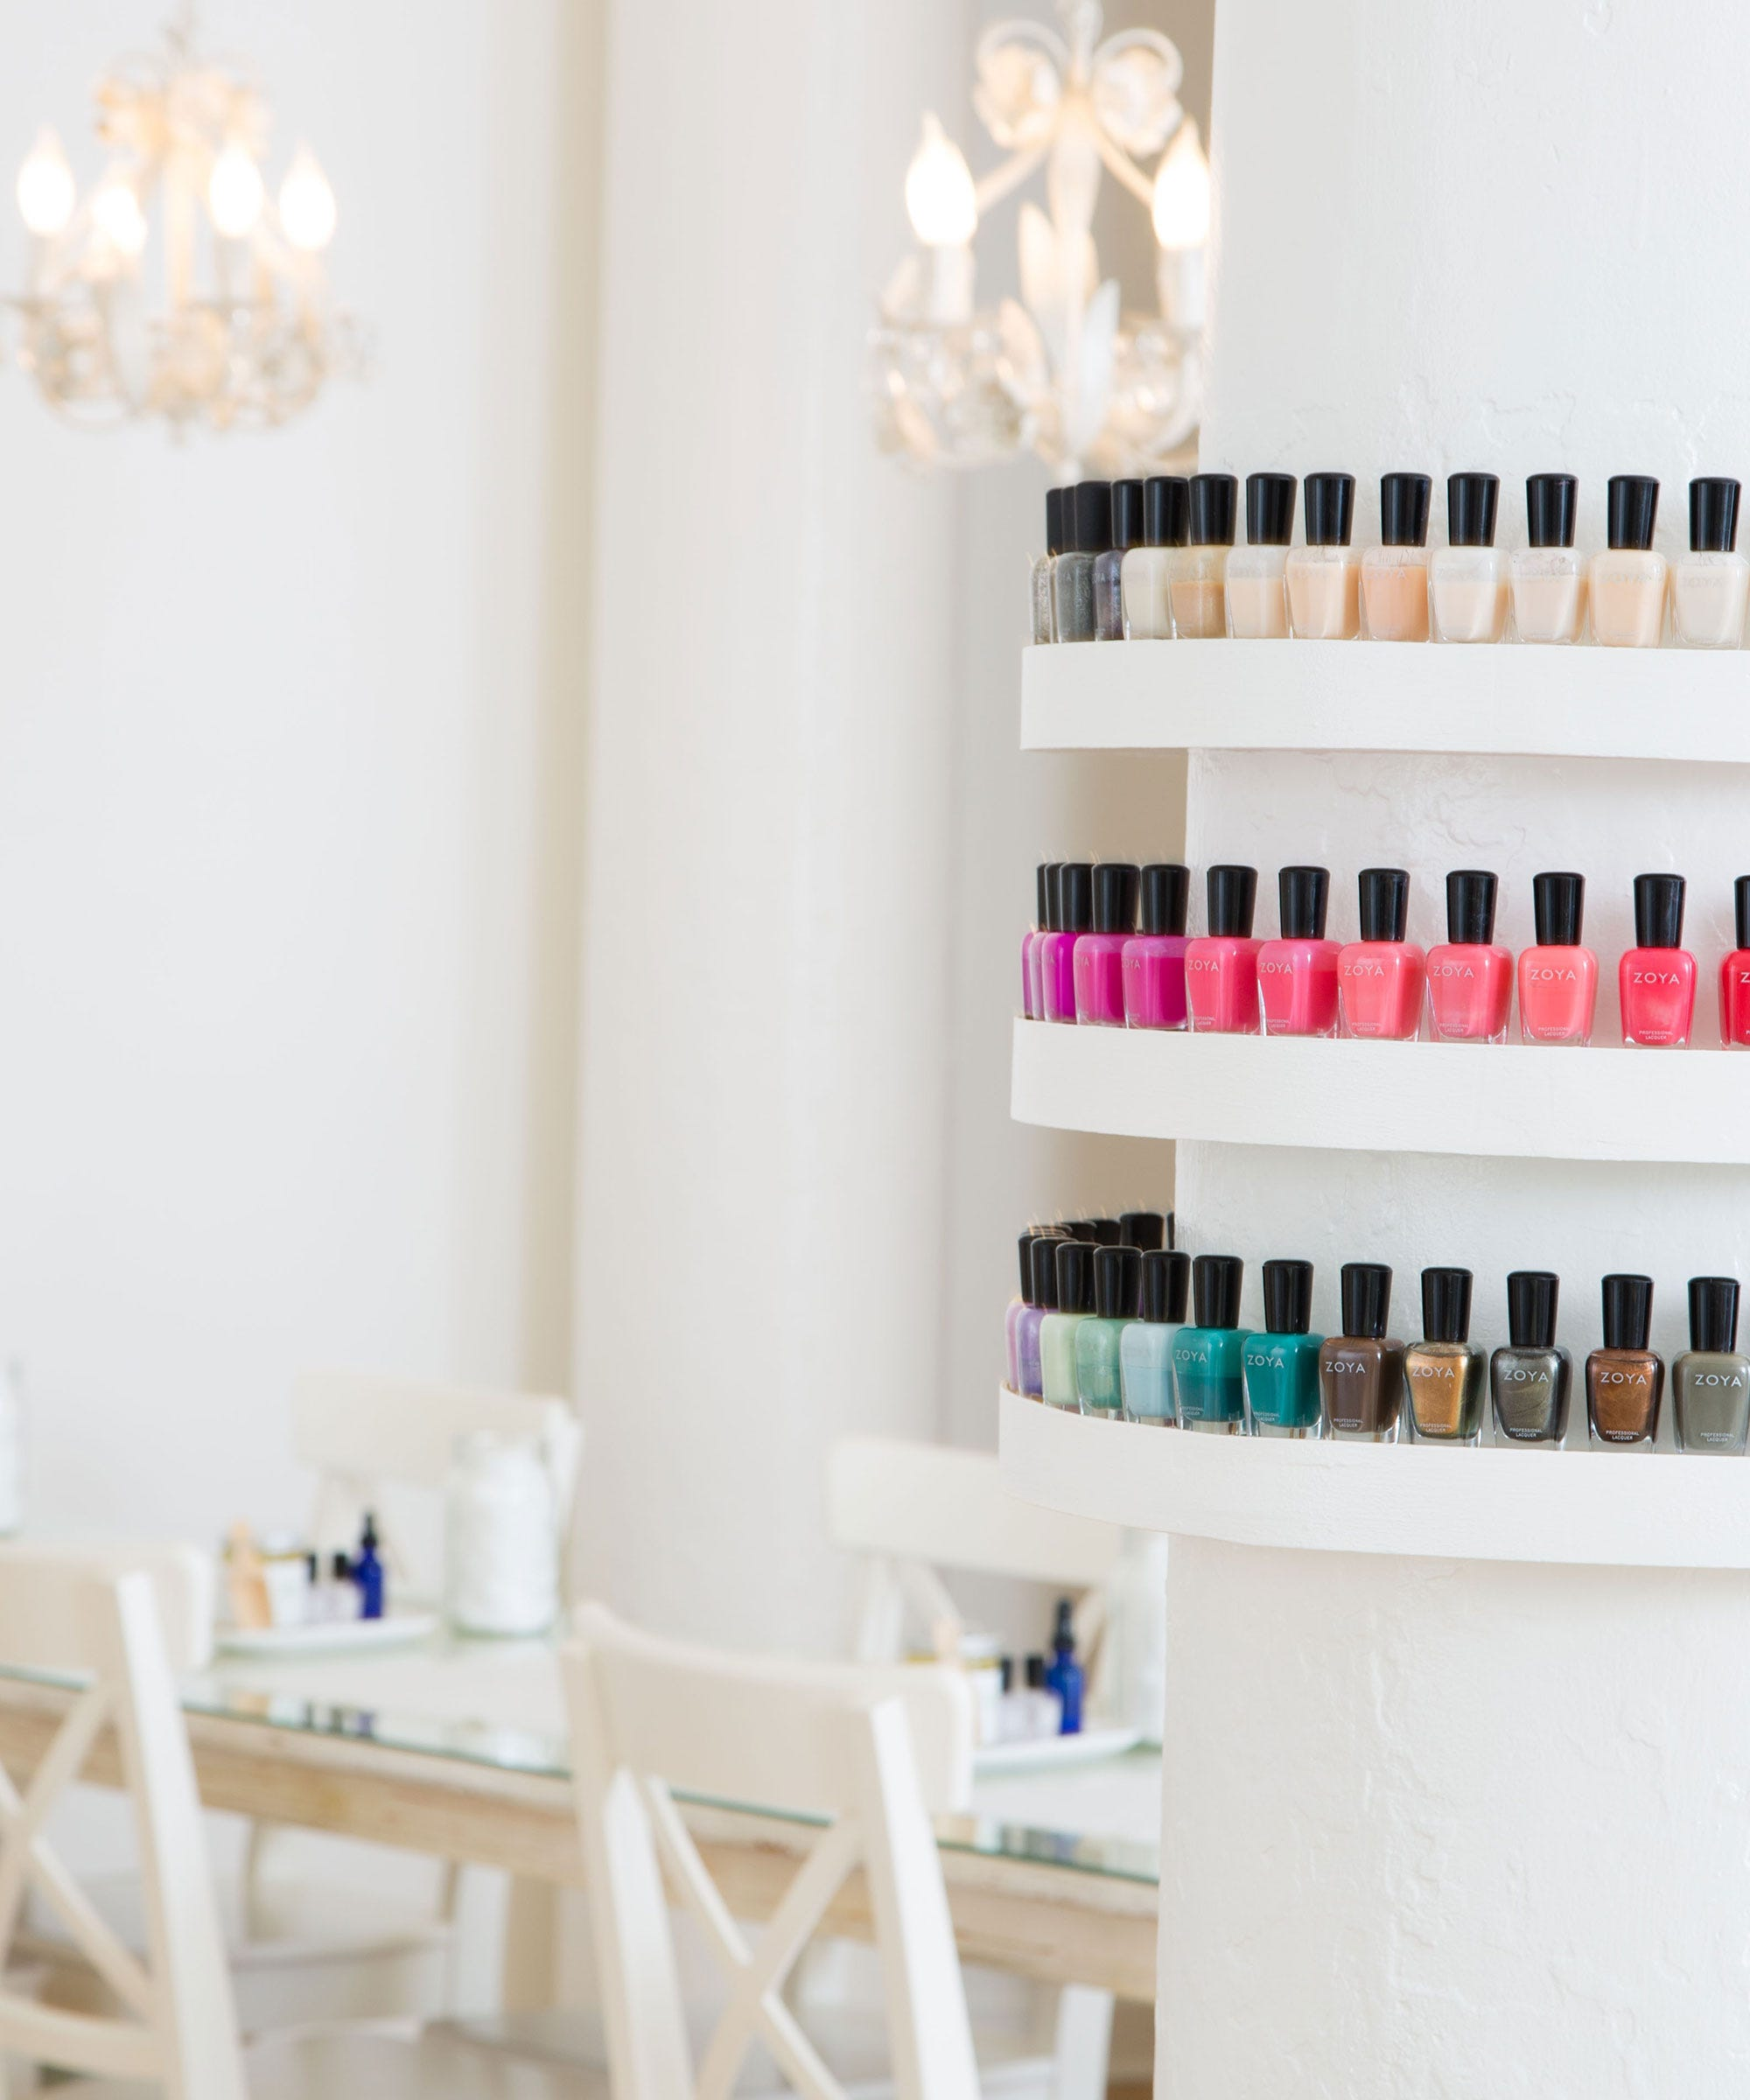 Nail Salons And Trendy Hair: Manicure Pedicure New York